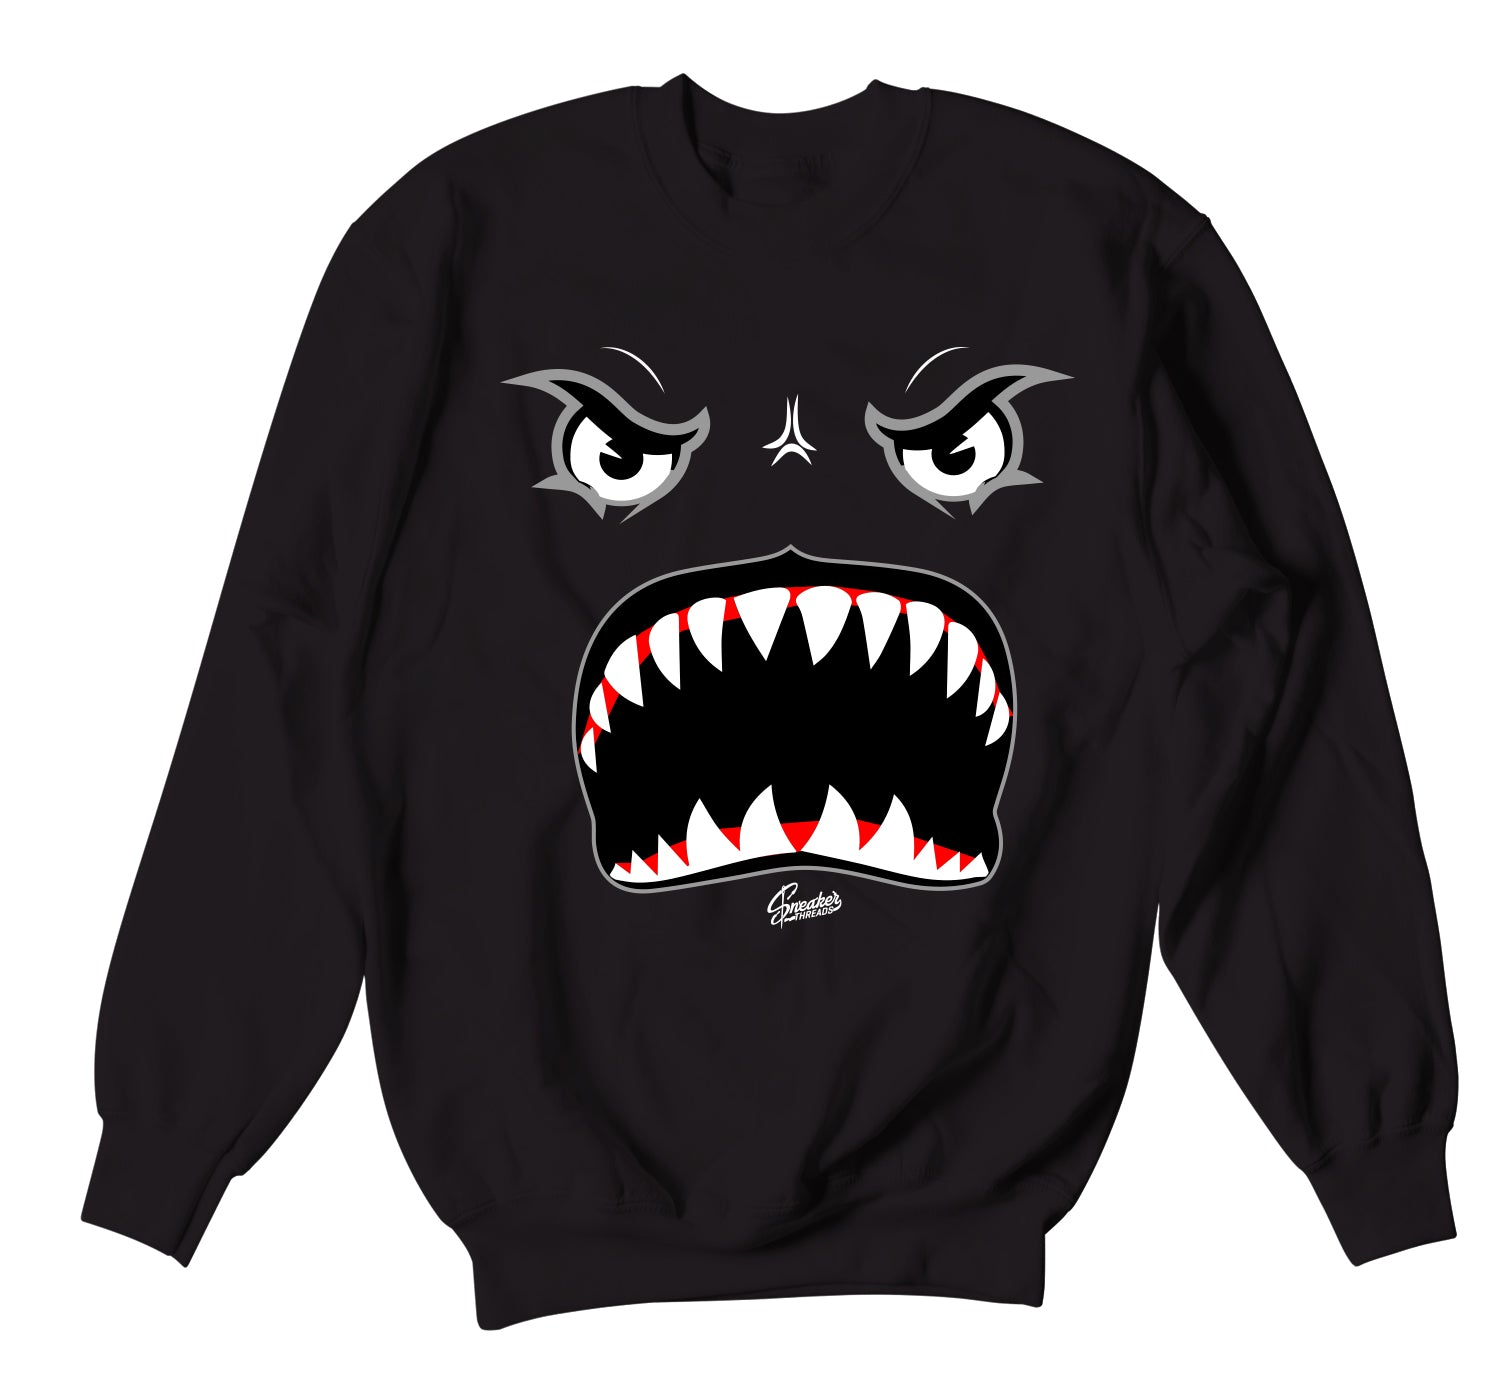 Foam Pro White/Black Sweater - Bite Me - Black